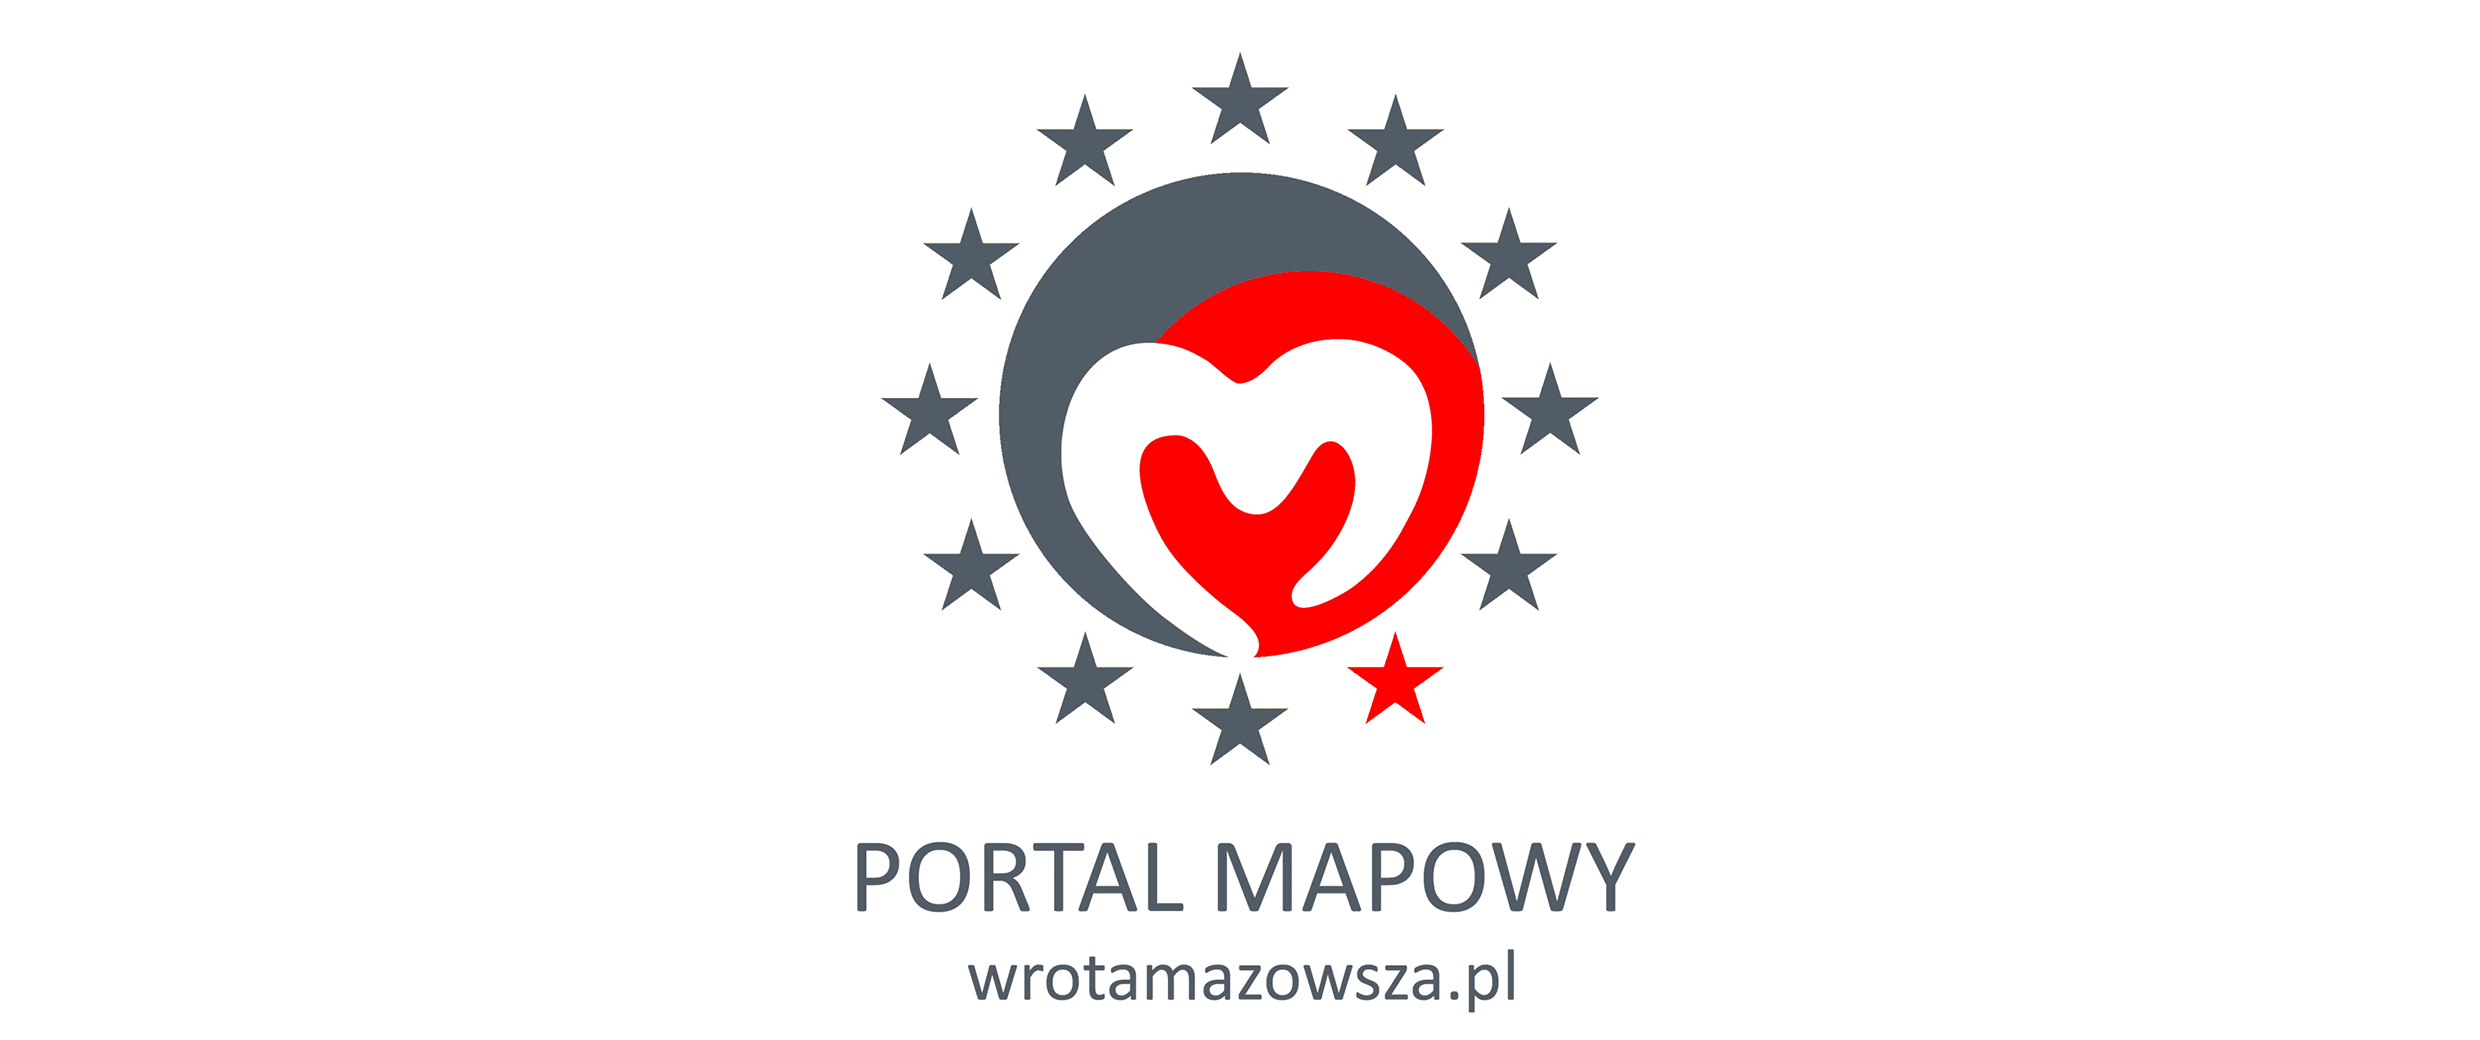 Portal mapowy